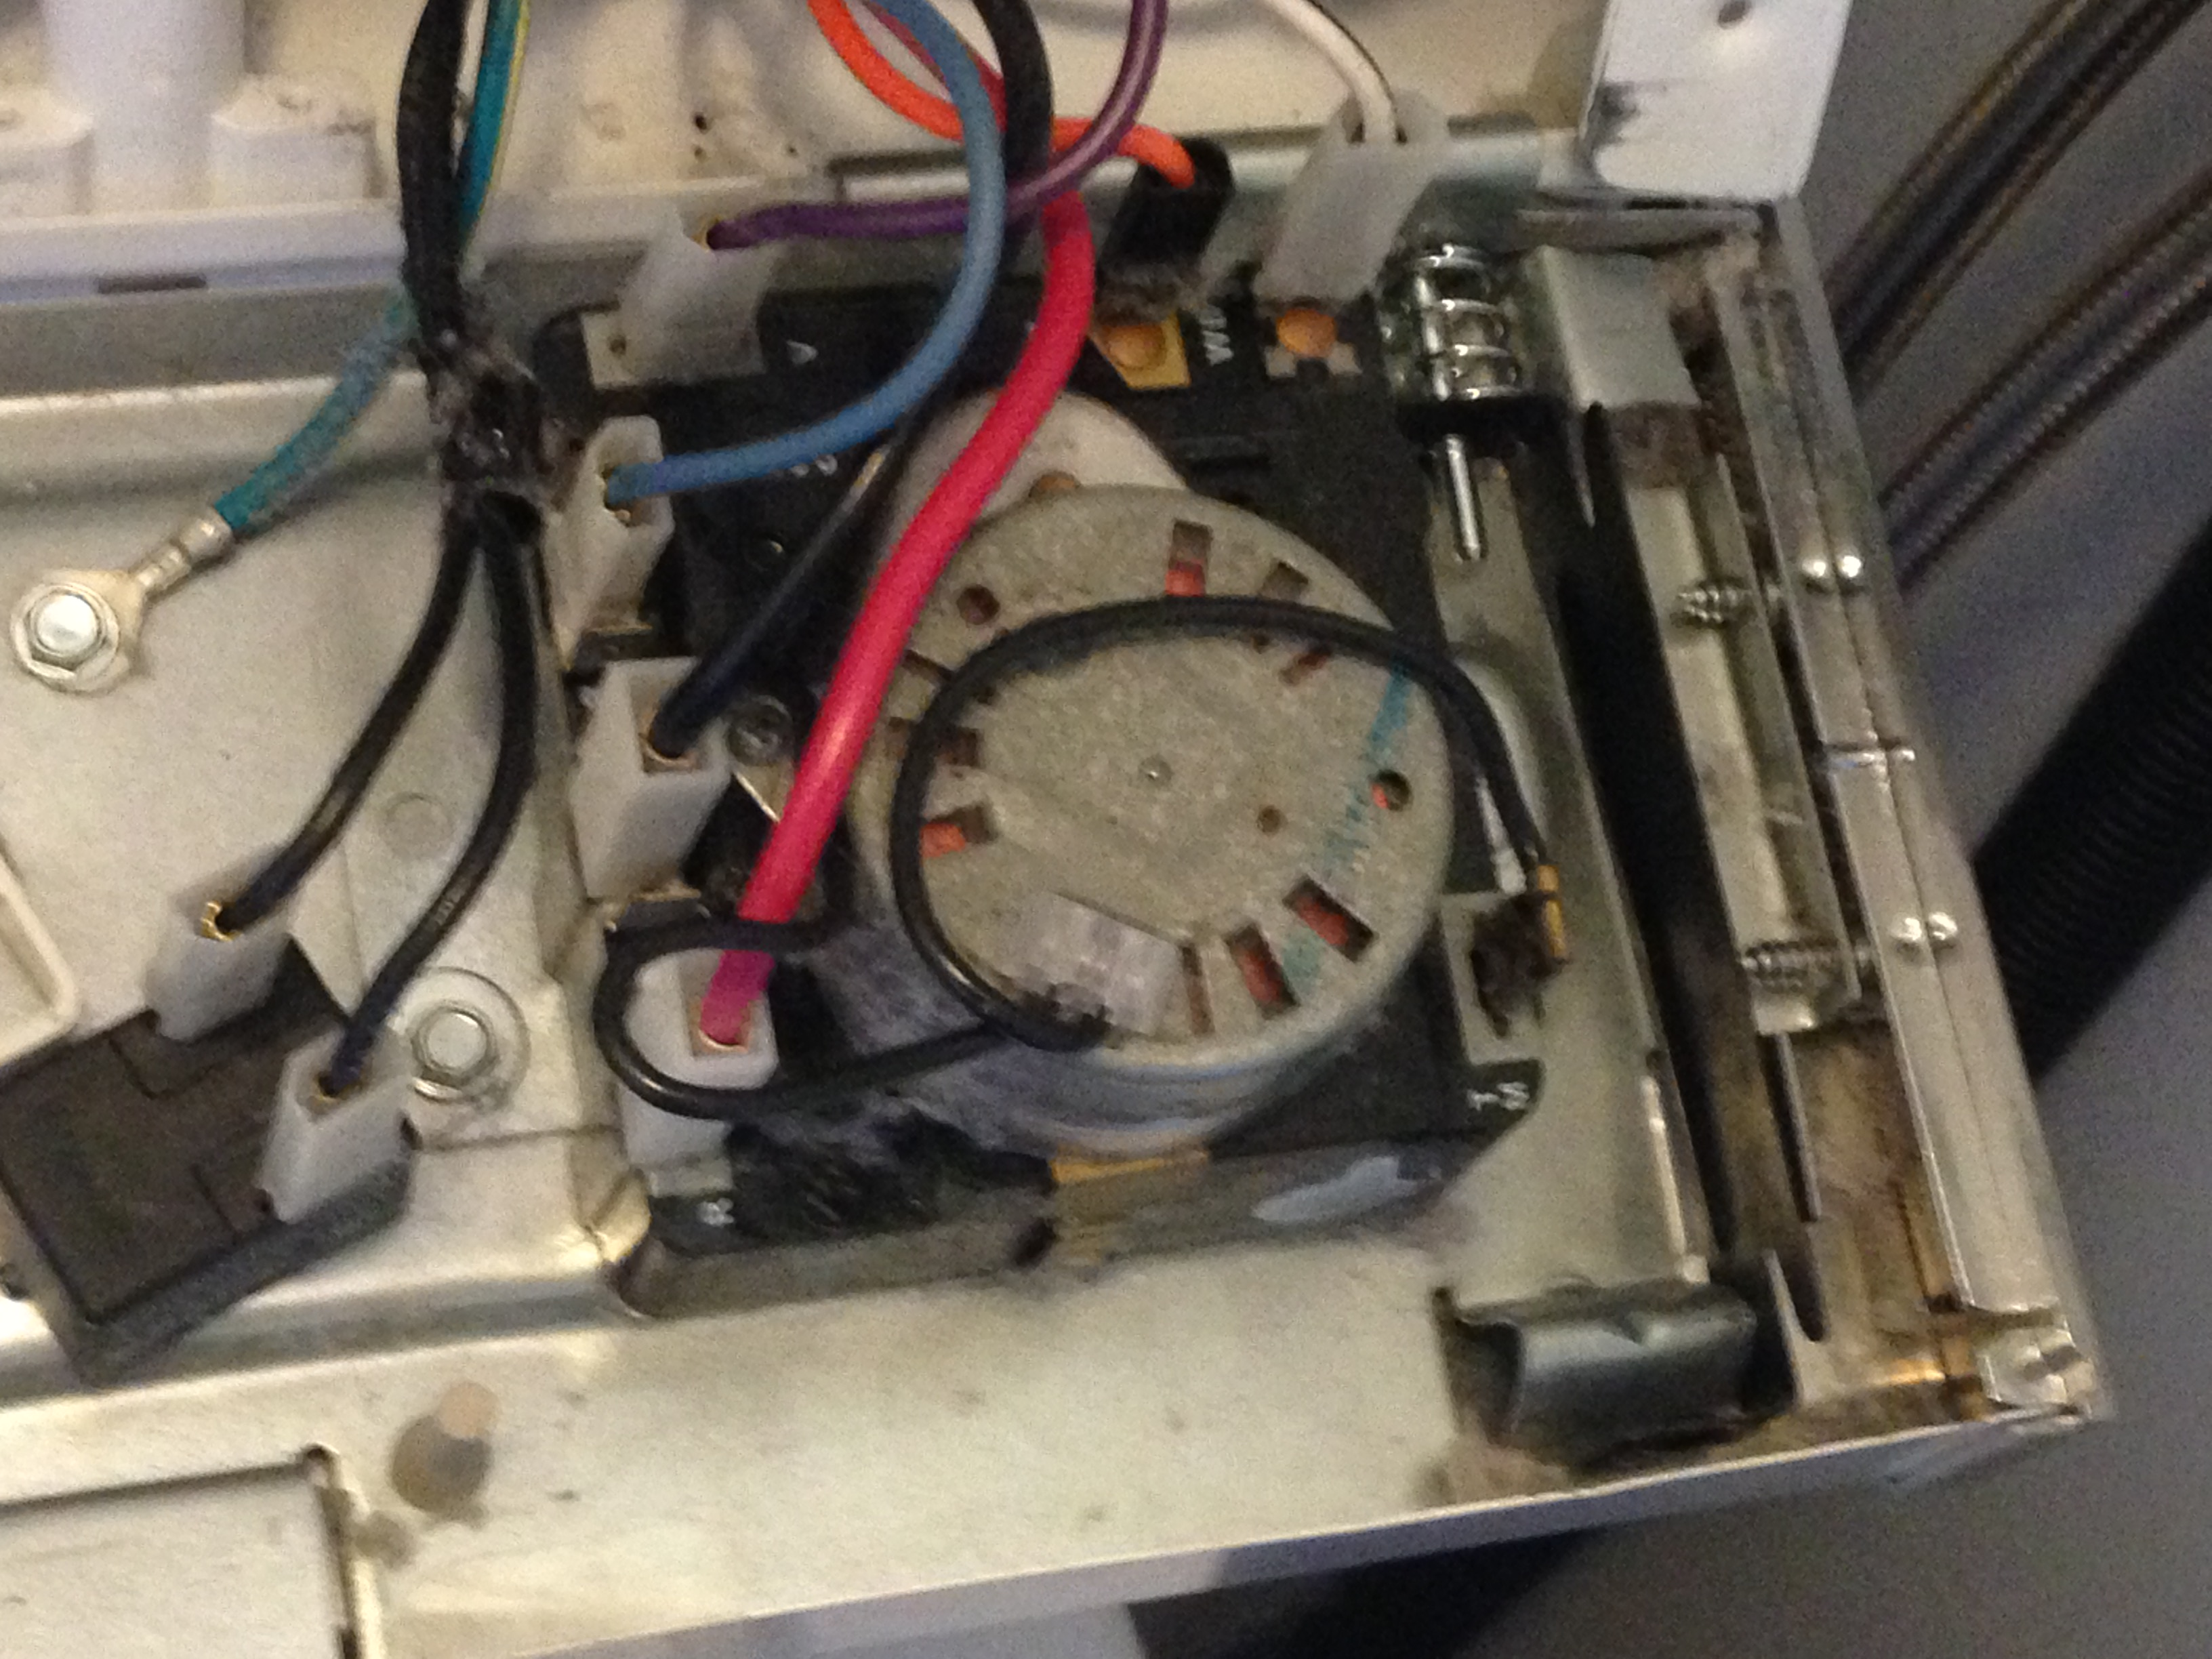 How do I reset or close the control panel of a Whirlpool